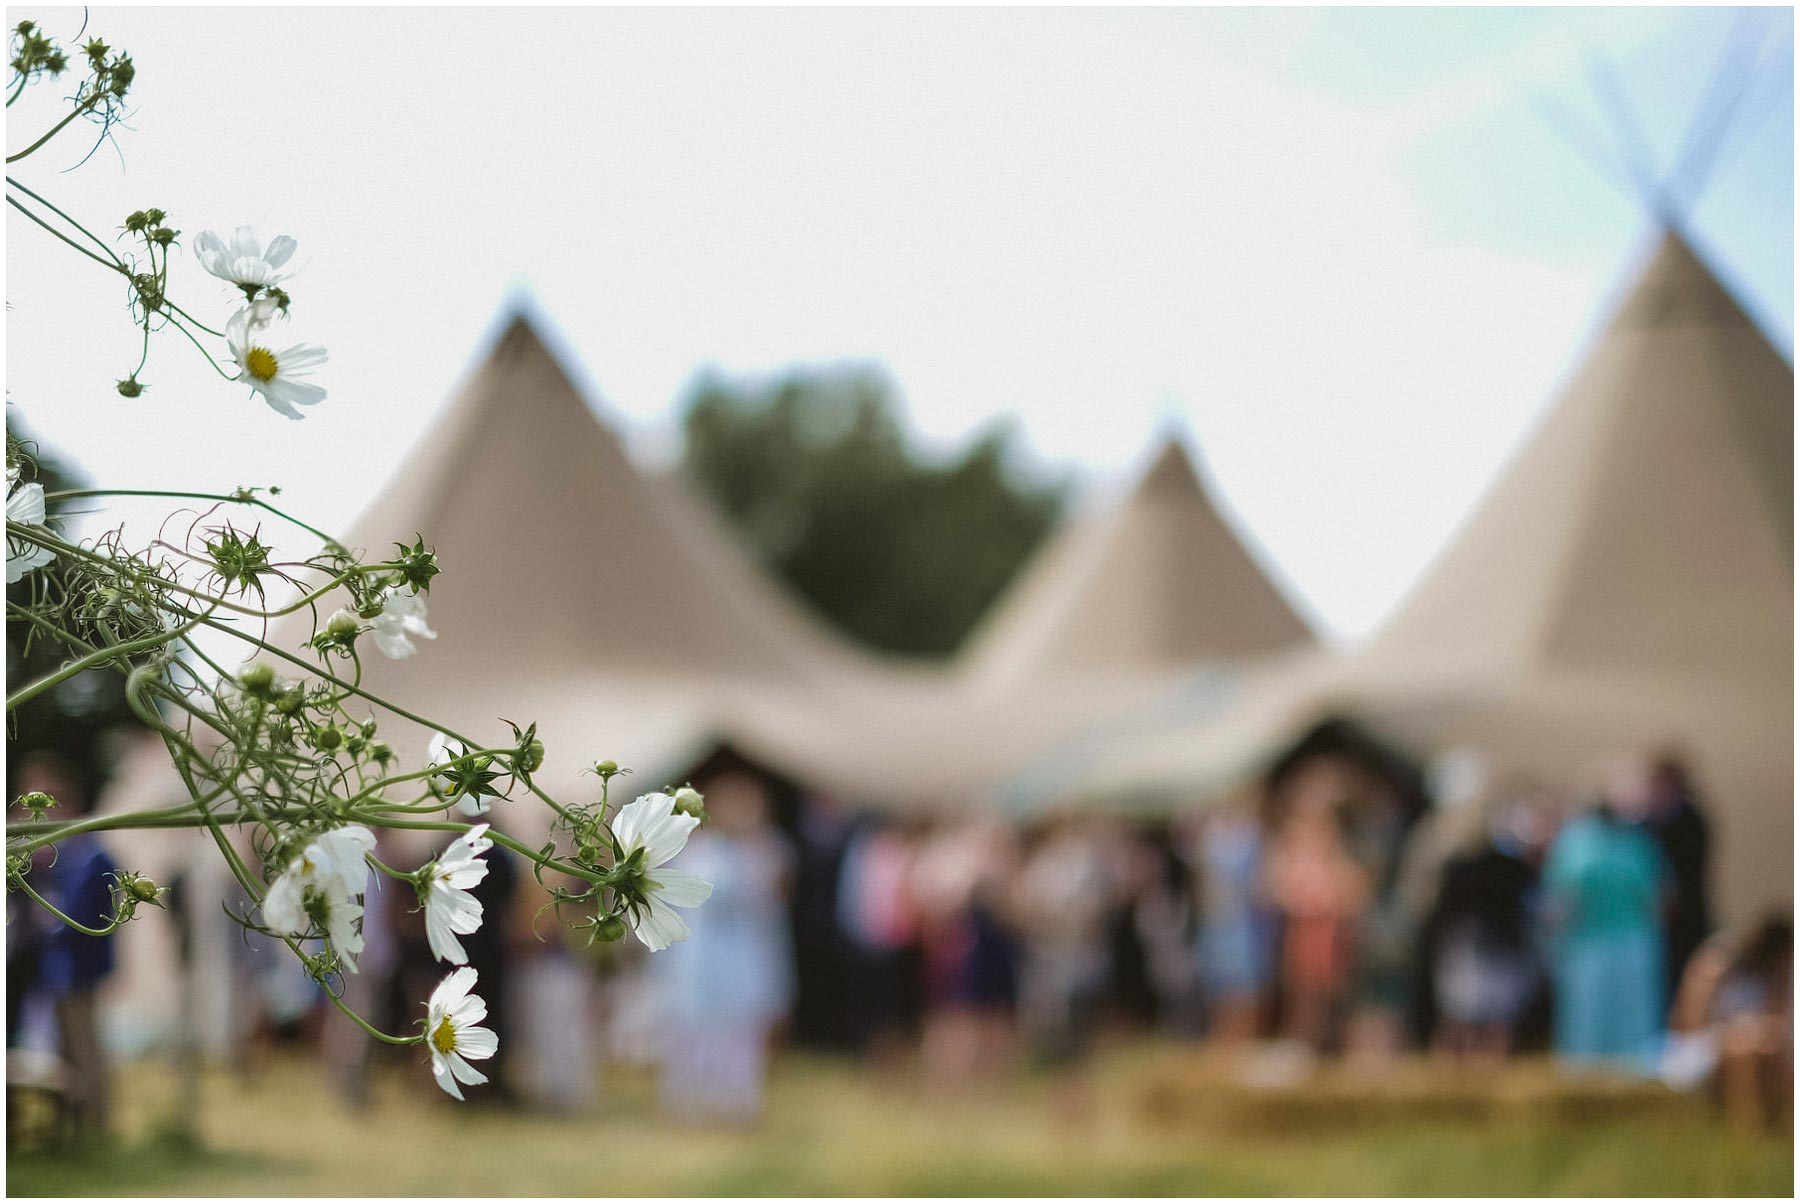 Kent-Festival-Tipi-wedding-photography_0096